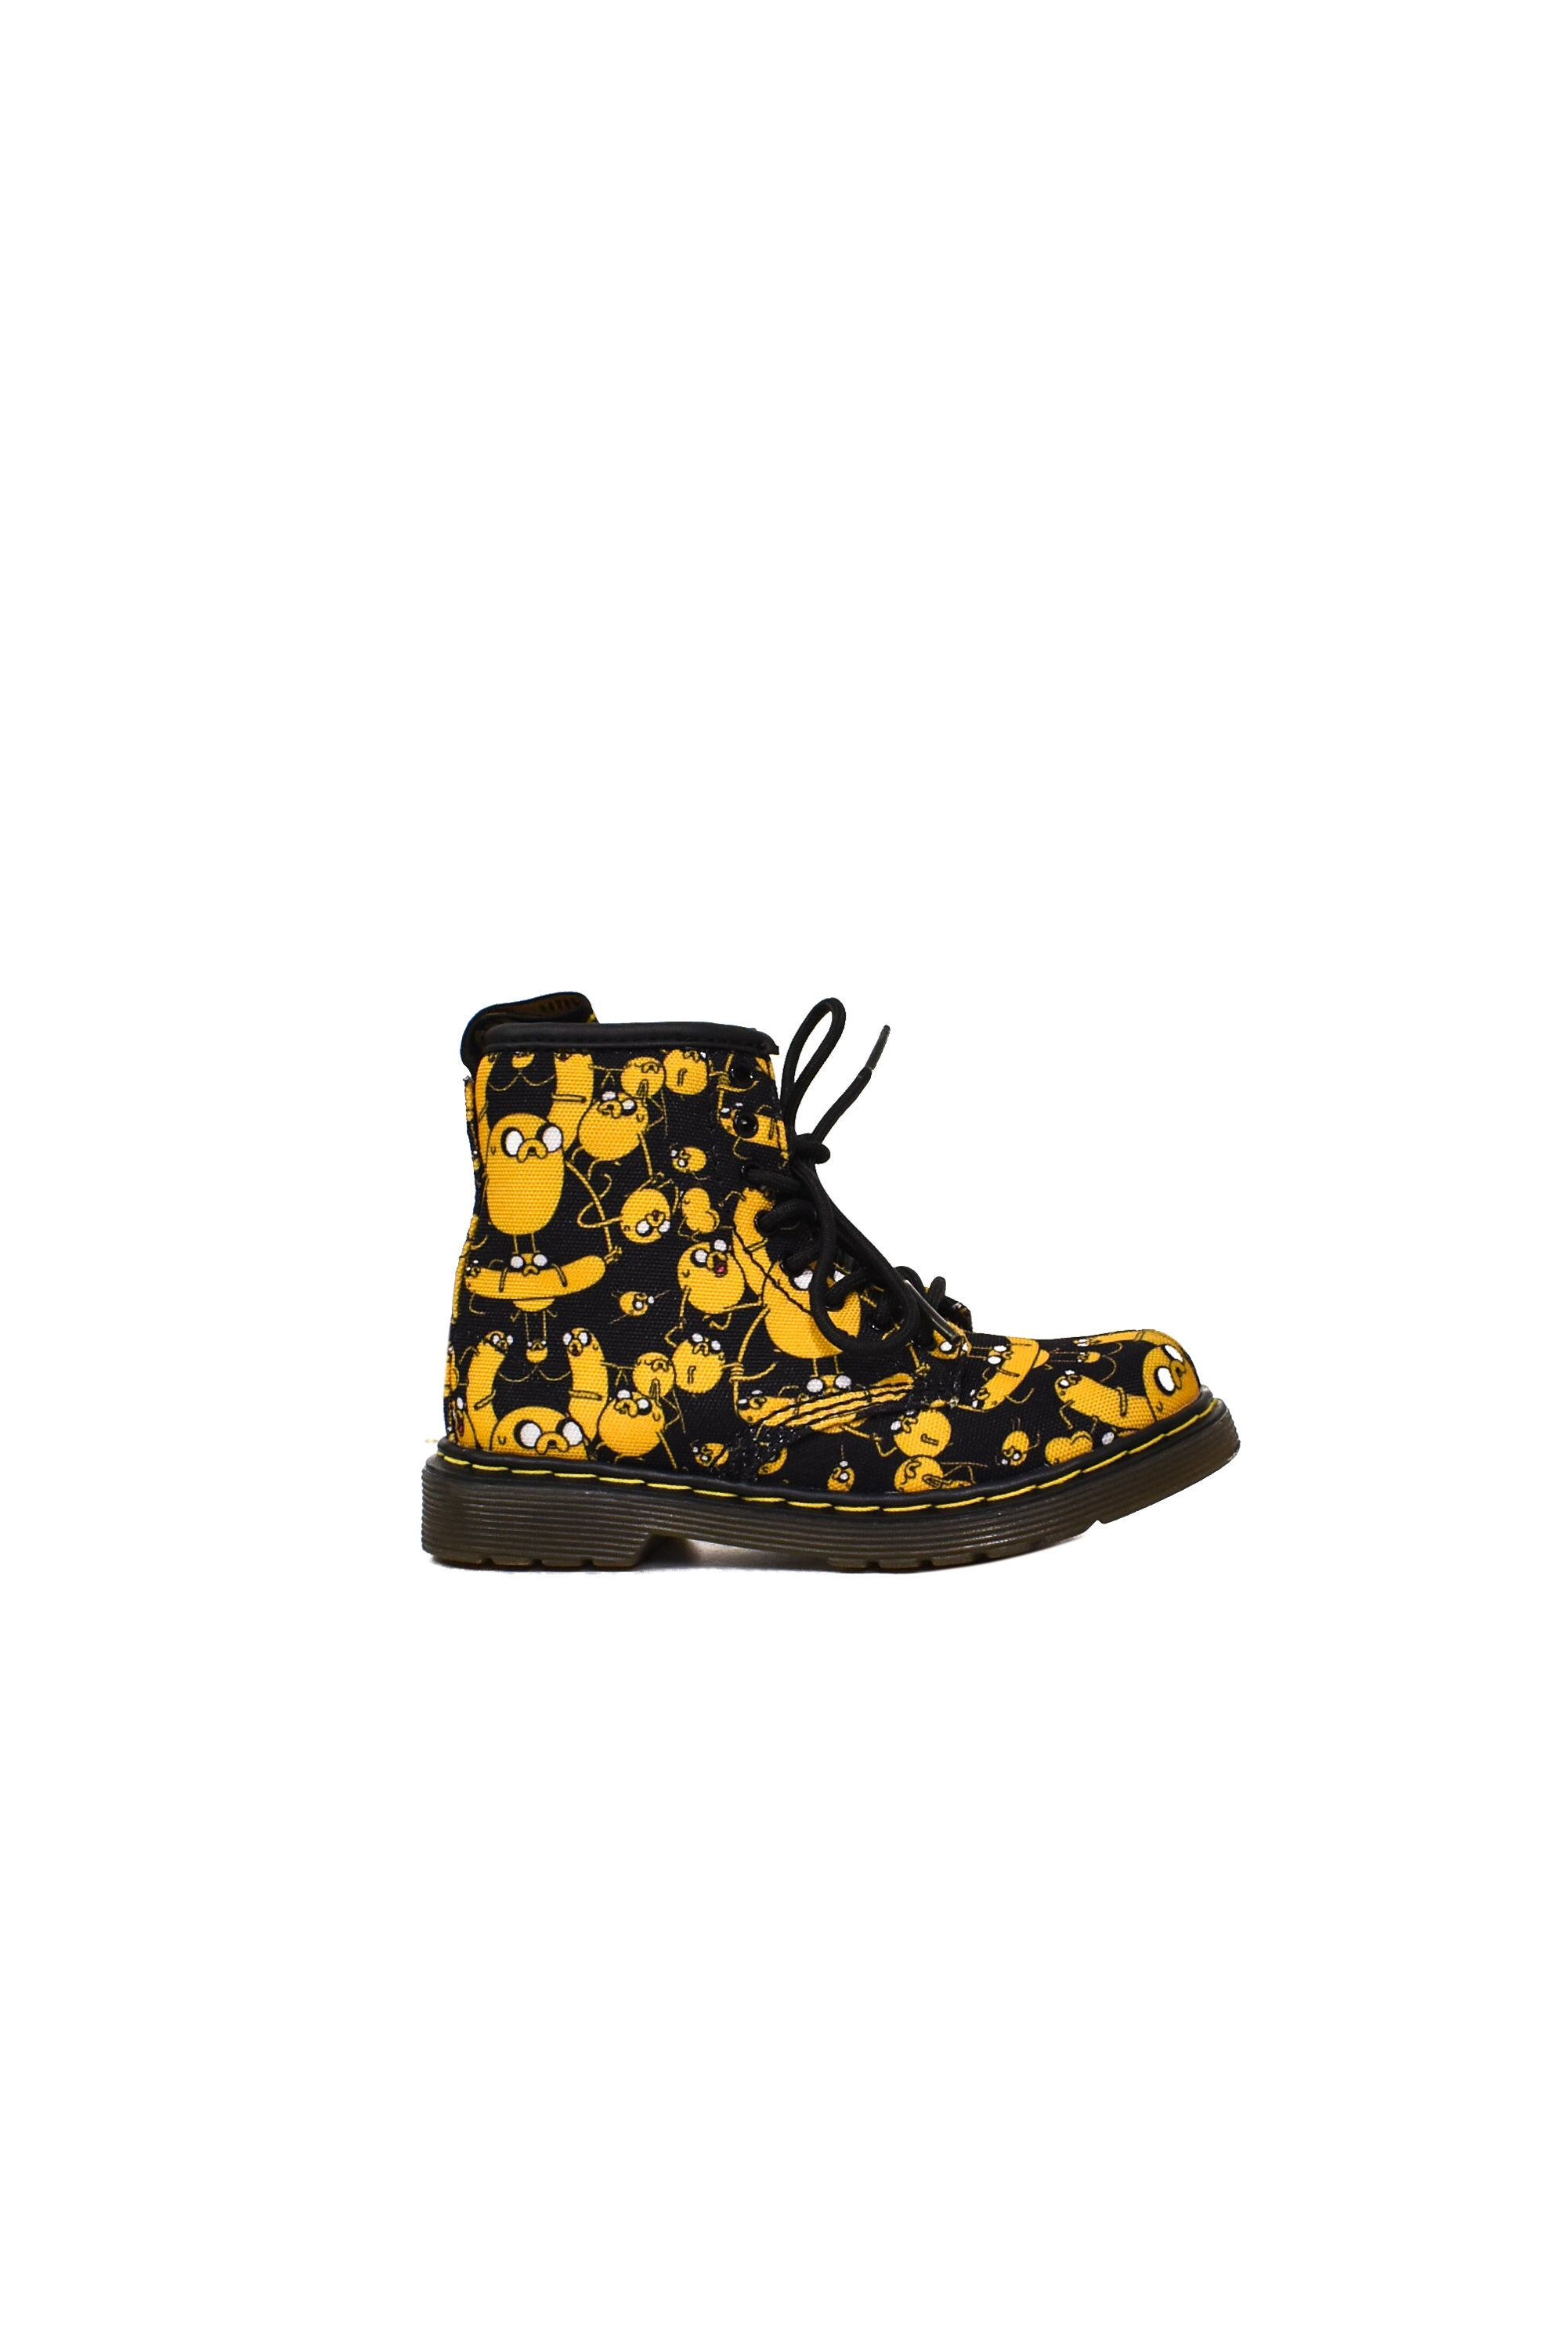 10025927 Dr. Martens Kids~Boots 4T (EU 26) at Retykle